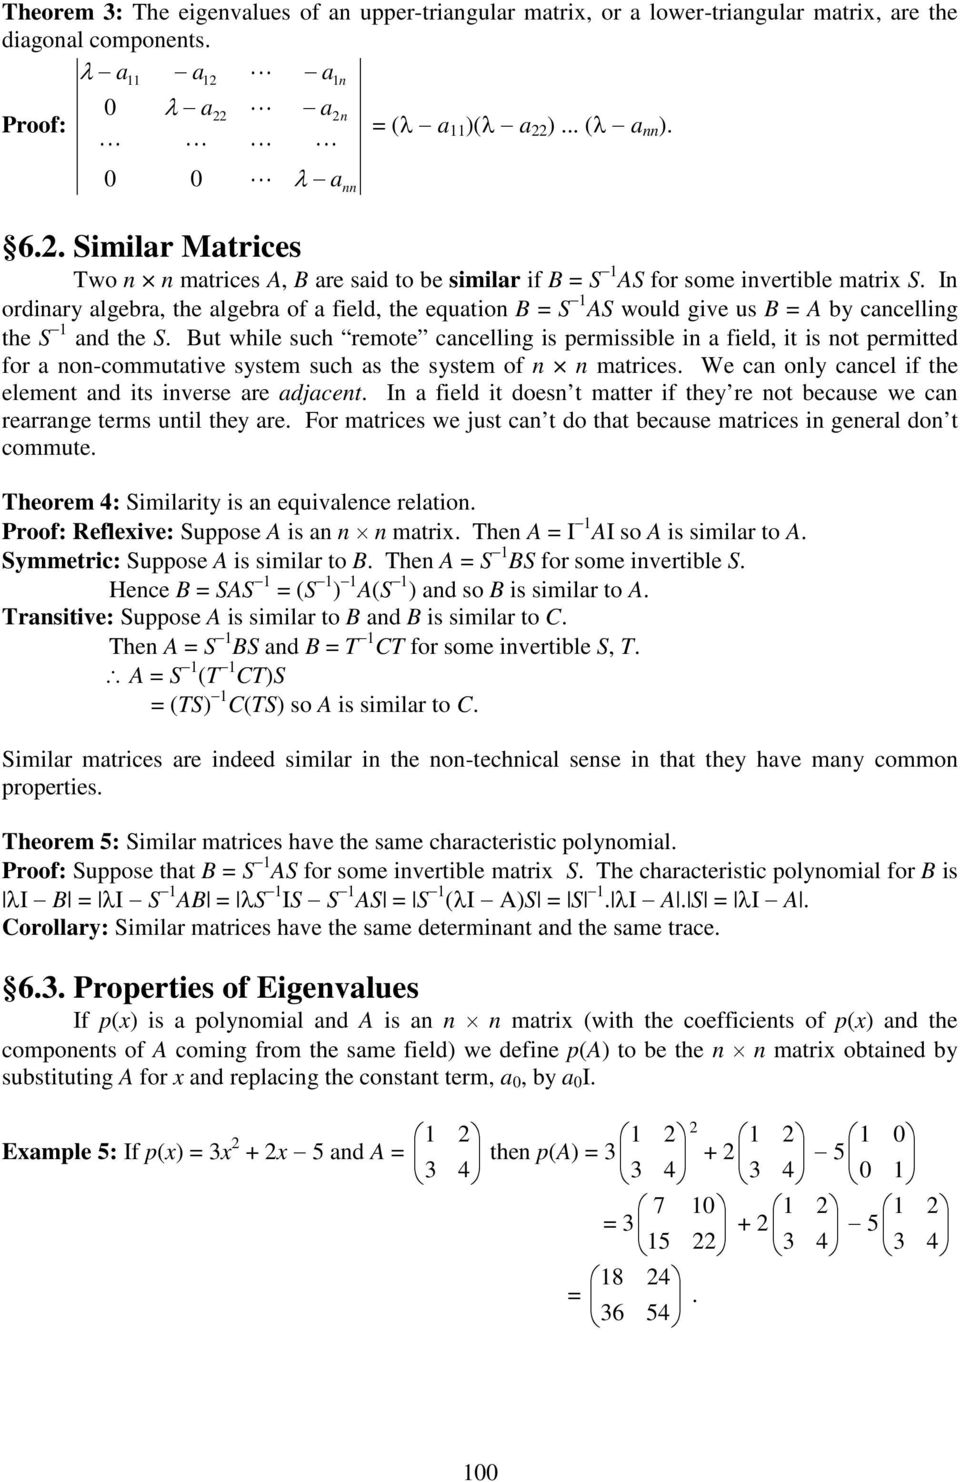 feld, t s not permtted for a non-commutatve system such as the system of n n matrces We can only cancel f the element and ts nverse are adjacent In a feld t doesn t matter f they re not because we